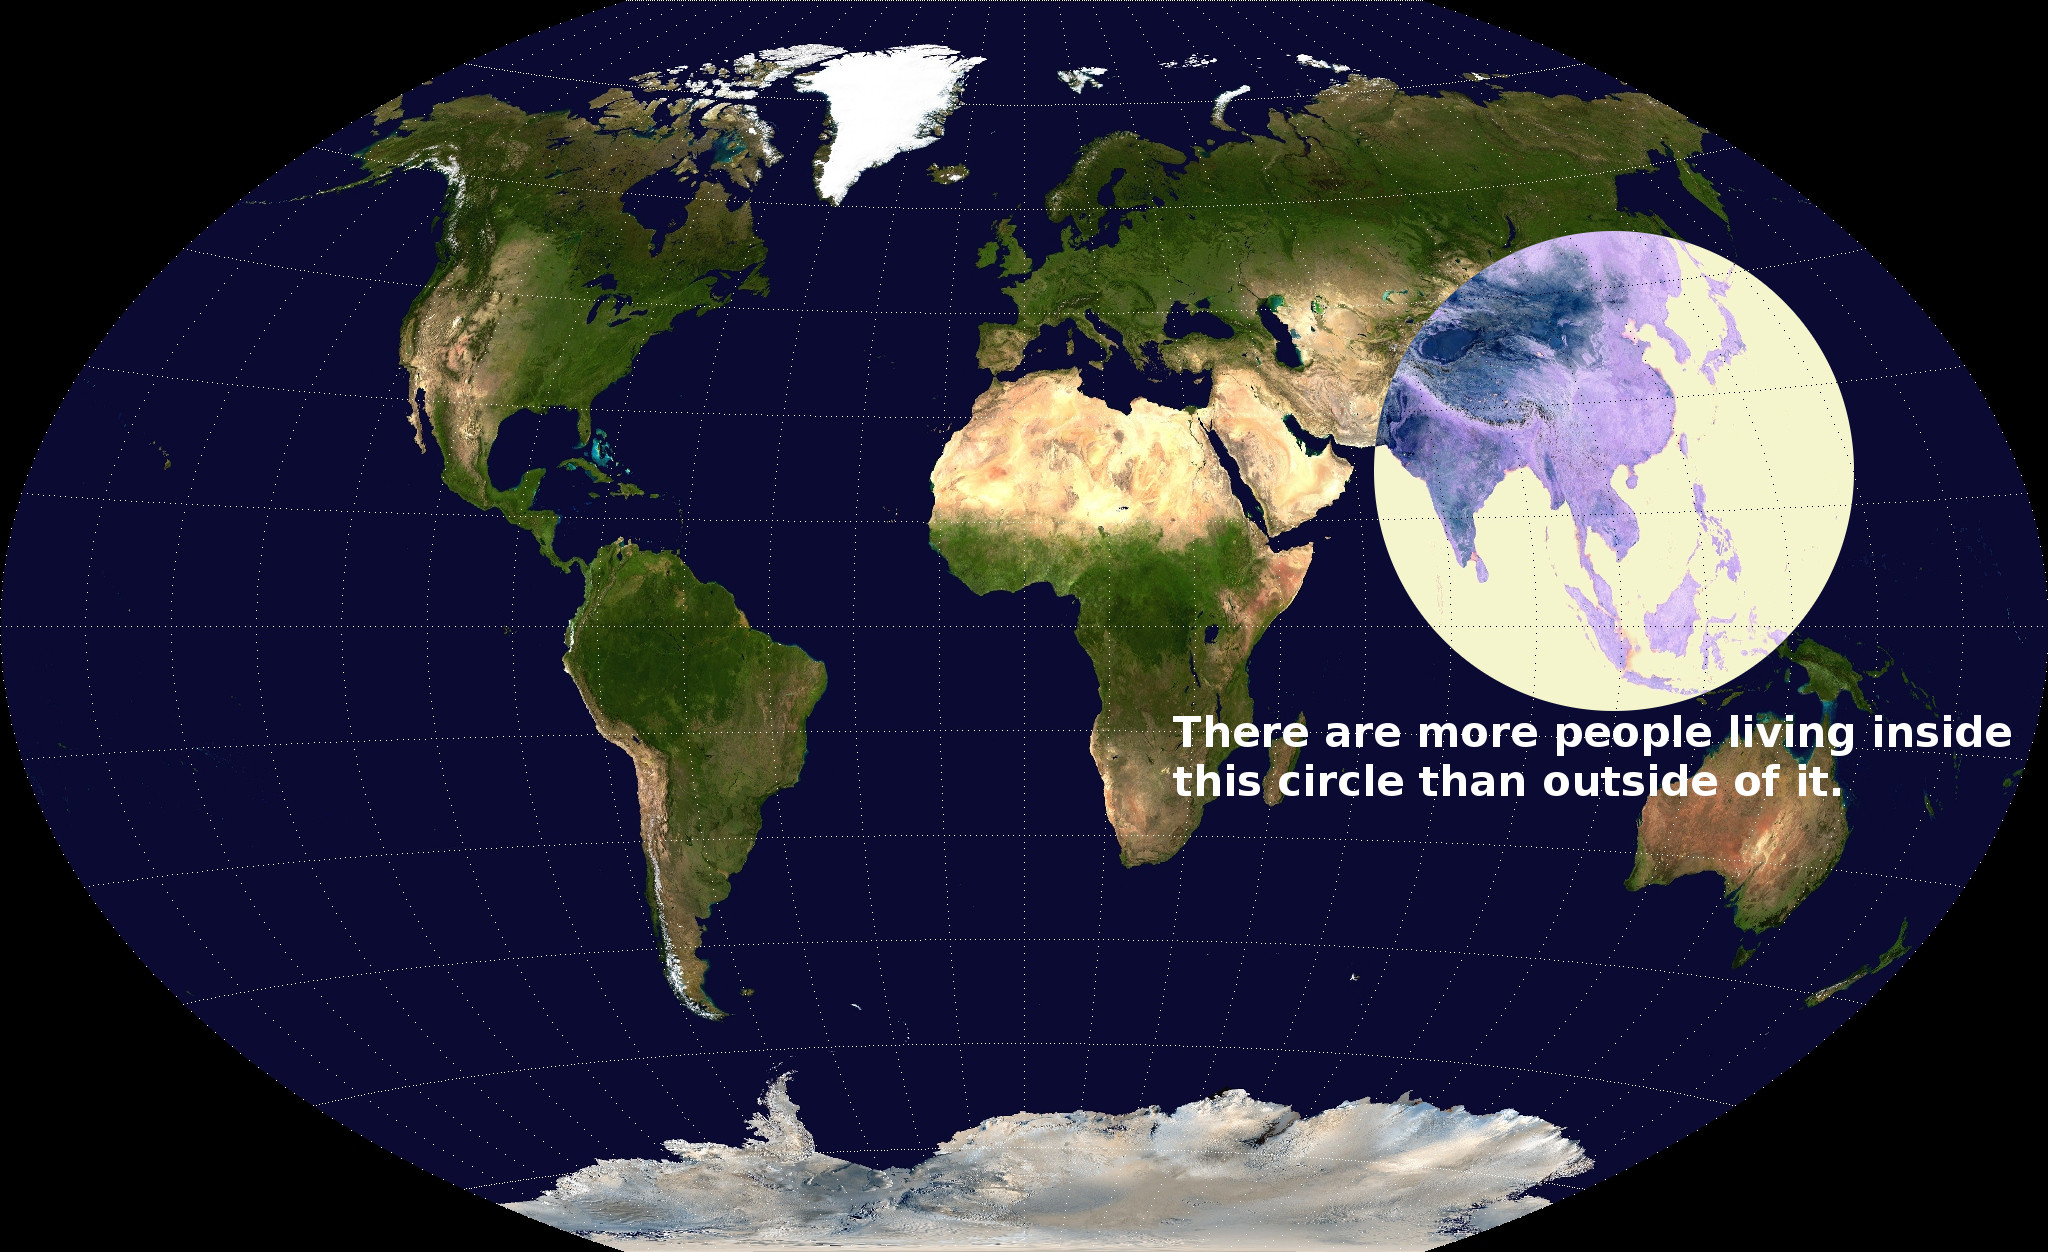 Half of population in small circle